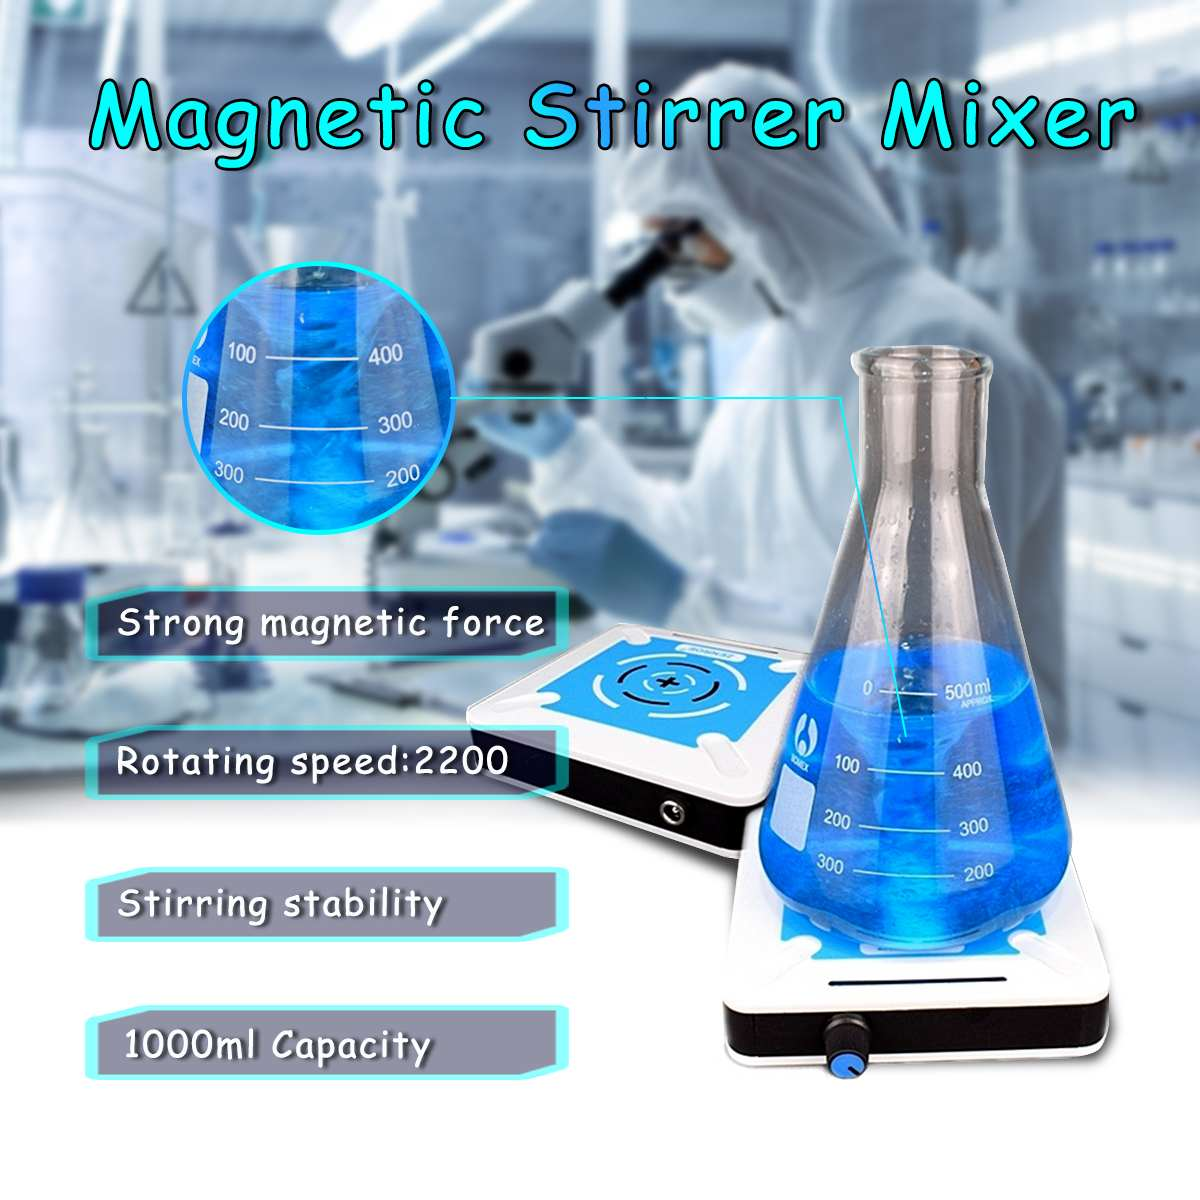 1L 1000ML 0-2200r/min Magnetic Stirrer Mixer With Stirring Bar Agitator Laboratory Miniature Speed Magnetic Stirrer Mini Mixer